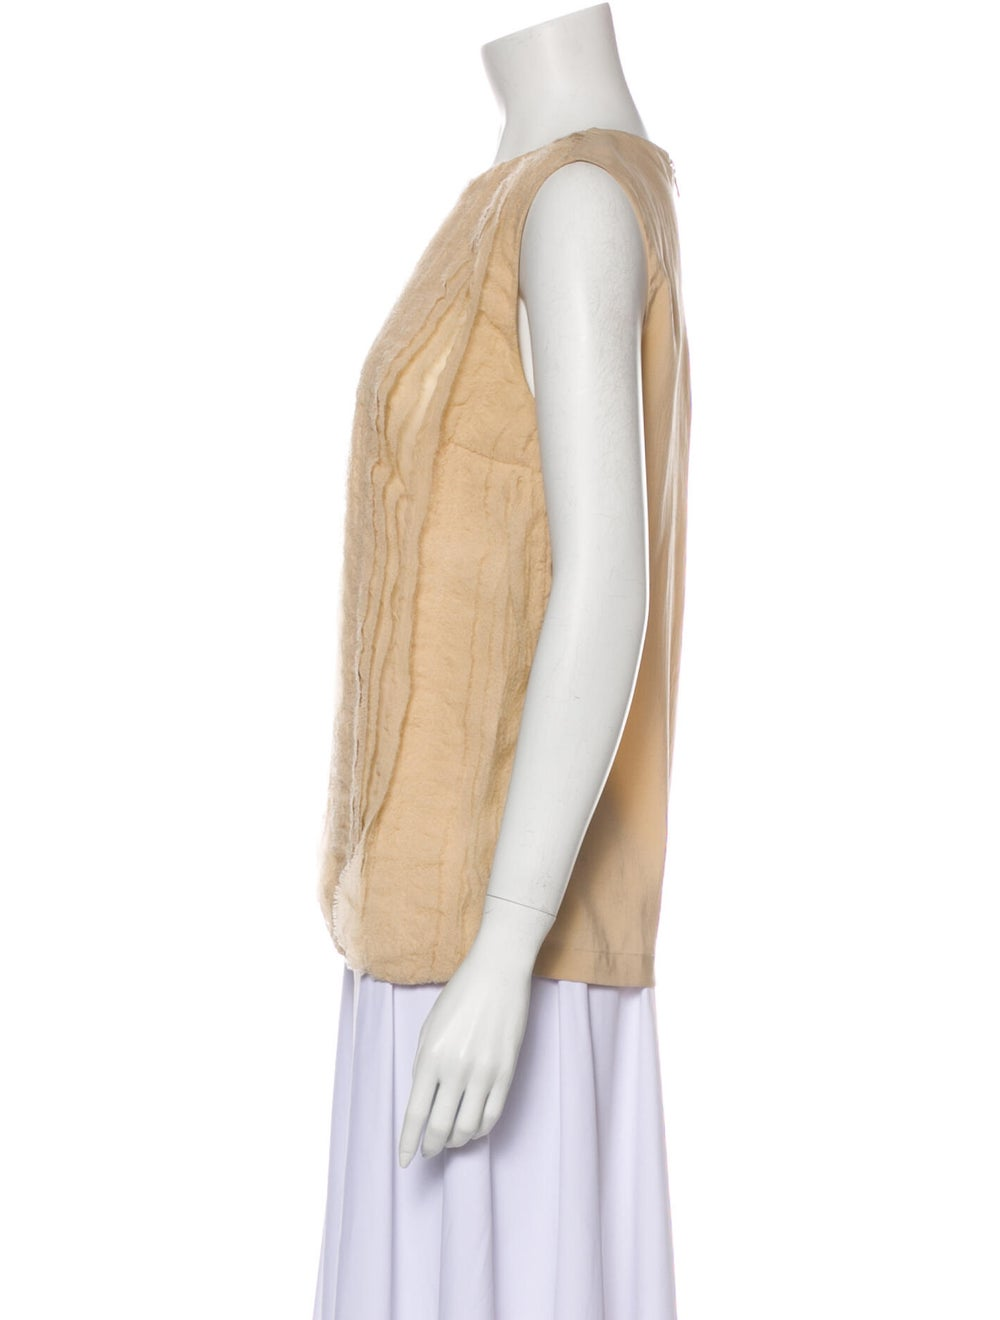 Brunello Cucinelli Silk Crew Neck Top - image 2